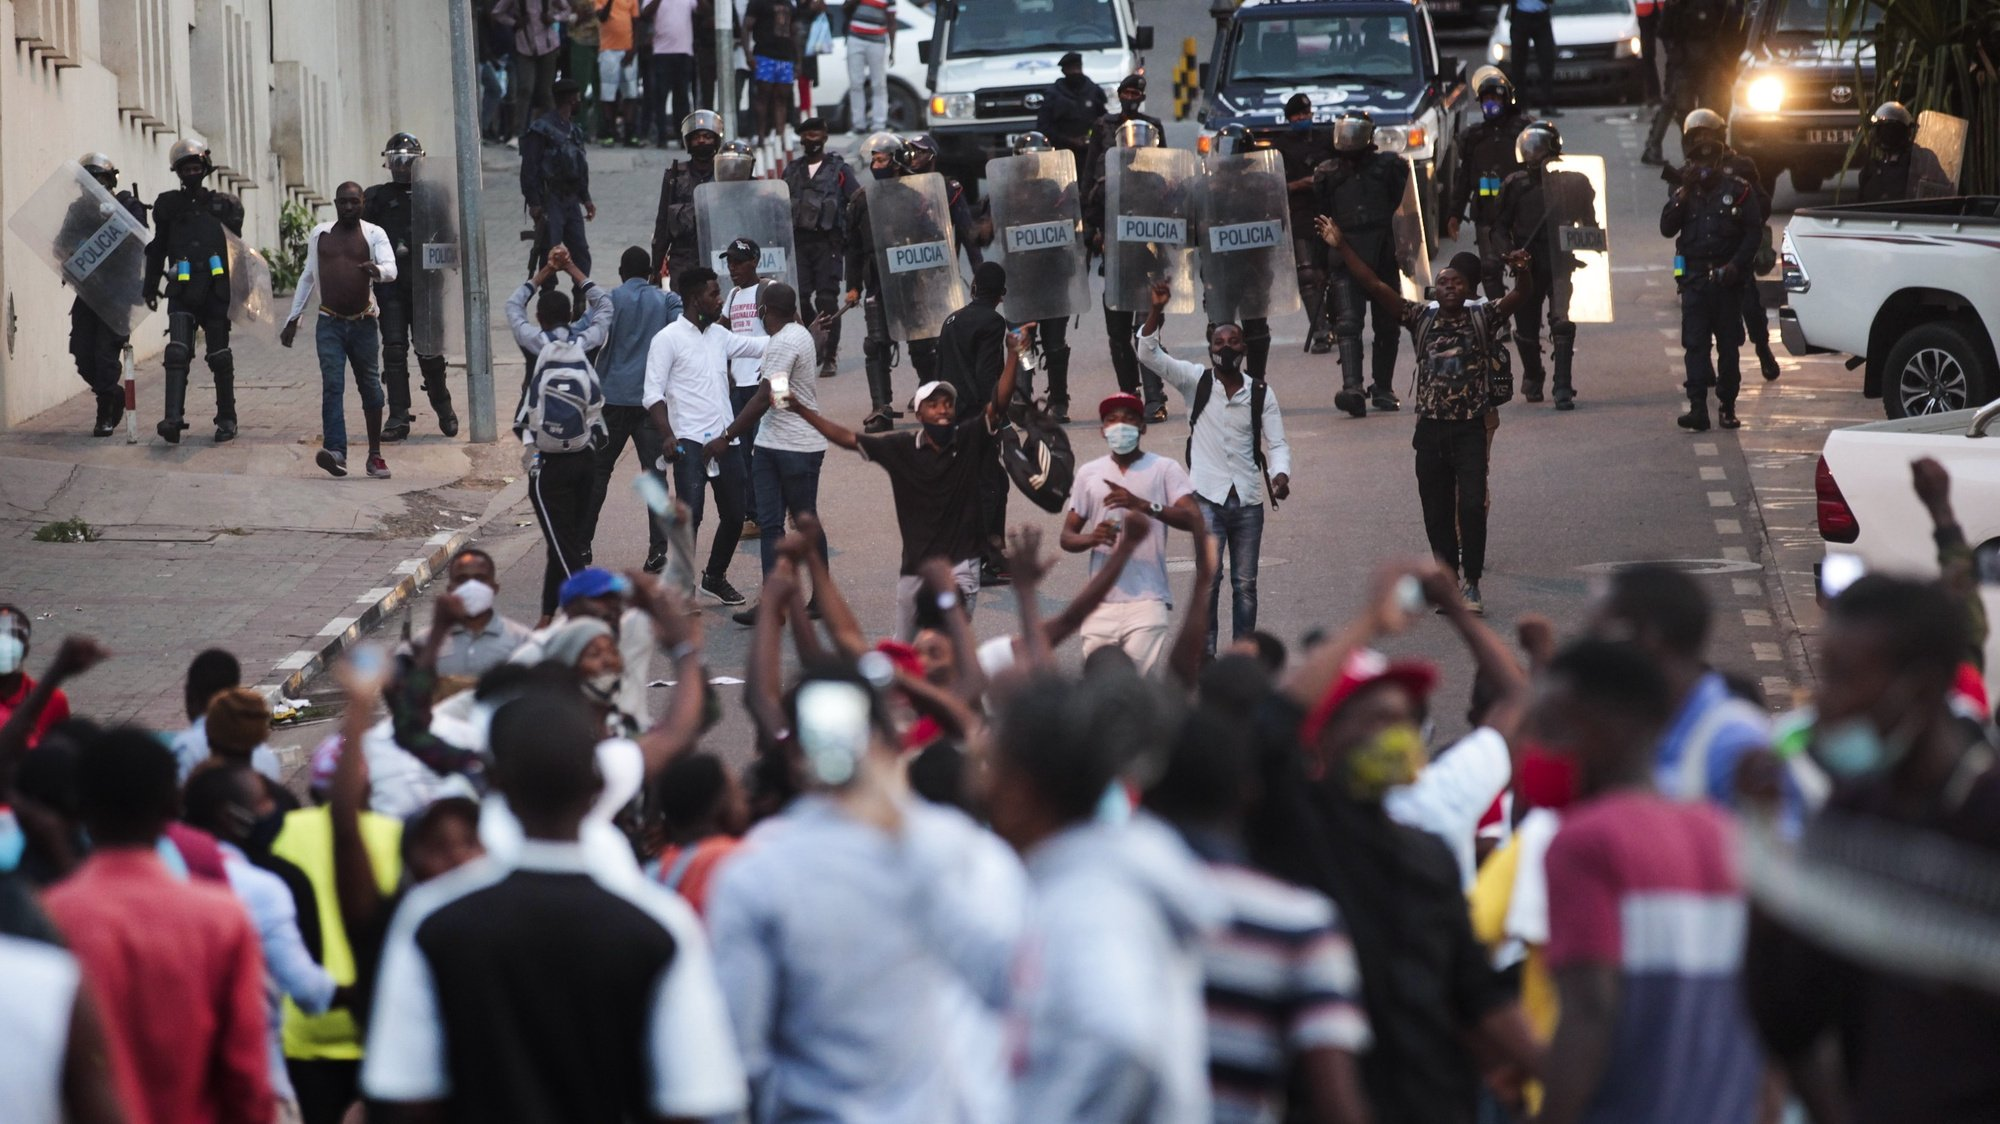 epa08778700 Angolan police disperses with tear gas about a hundred young people who were concentrated in front of the Luanda Provincial Court and blocked the access streets to the building, Luanda, Angola, 27 October 2020. This is the second day that the surrounding area of the court, the Dona Ana Joaquina Palace, in downtown Luanda, is occupied by young people who are demanding the release of the demonstrators arrested on 24 October and promised to remain there until night.  EPA/AMPE ROGERIO